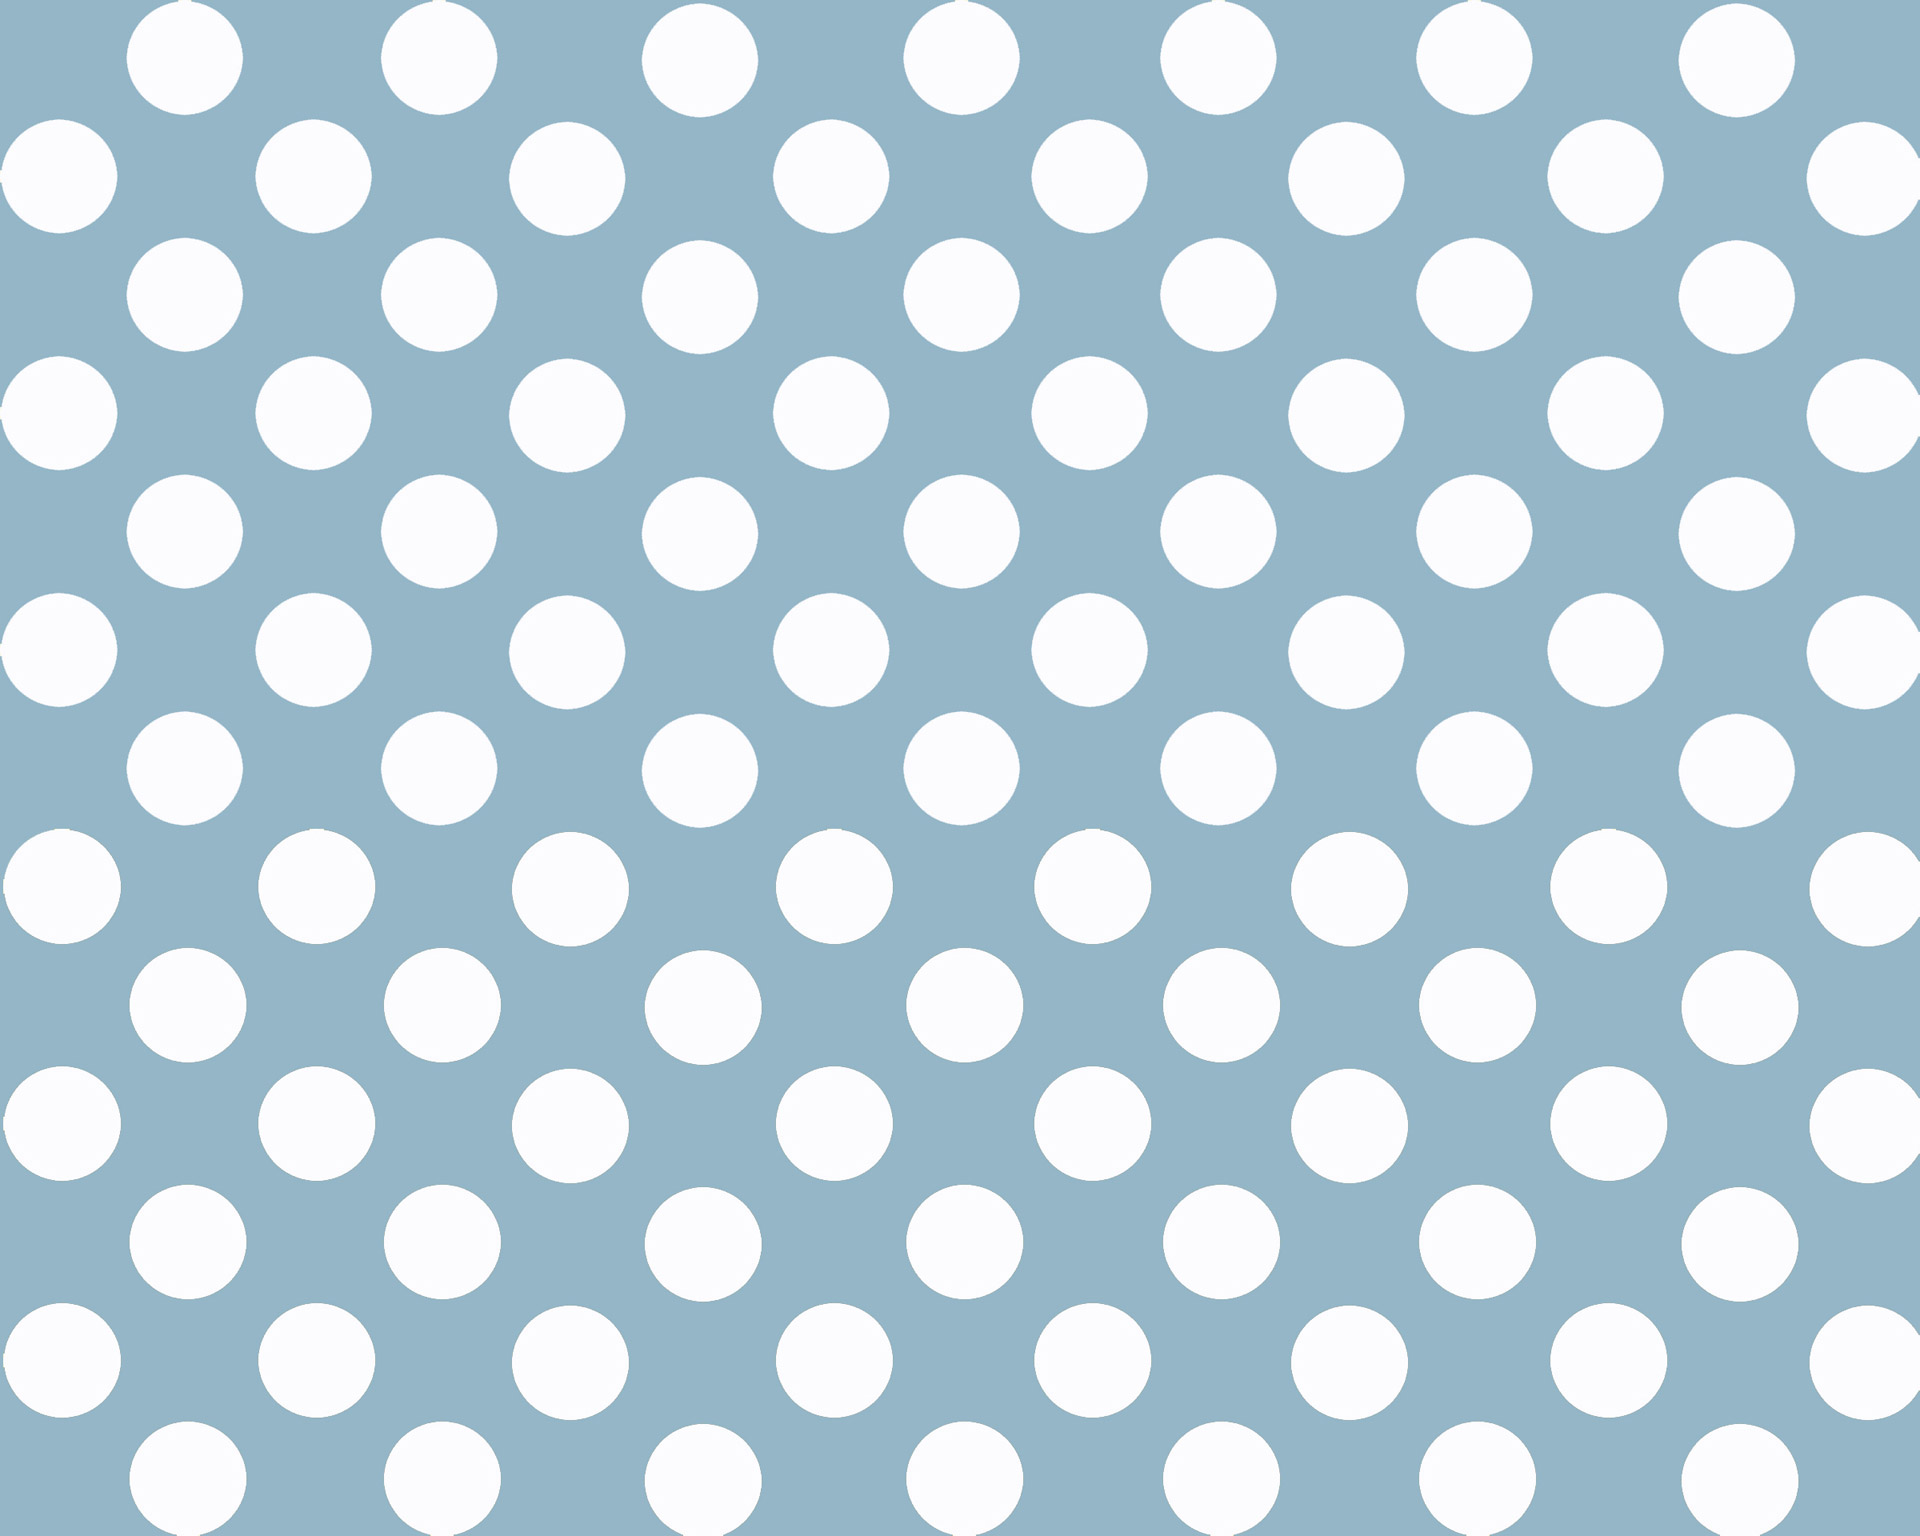 blue-polkadot-background.jpg